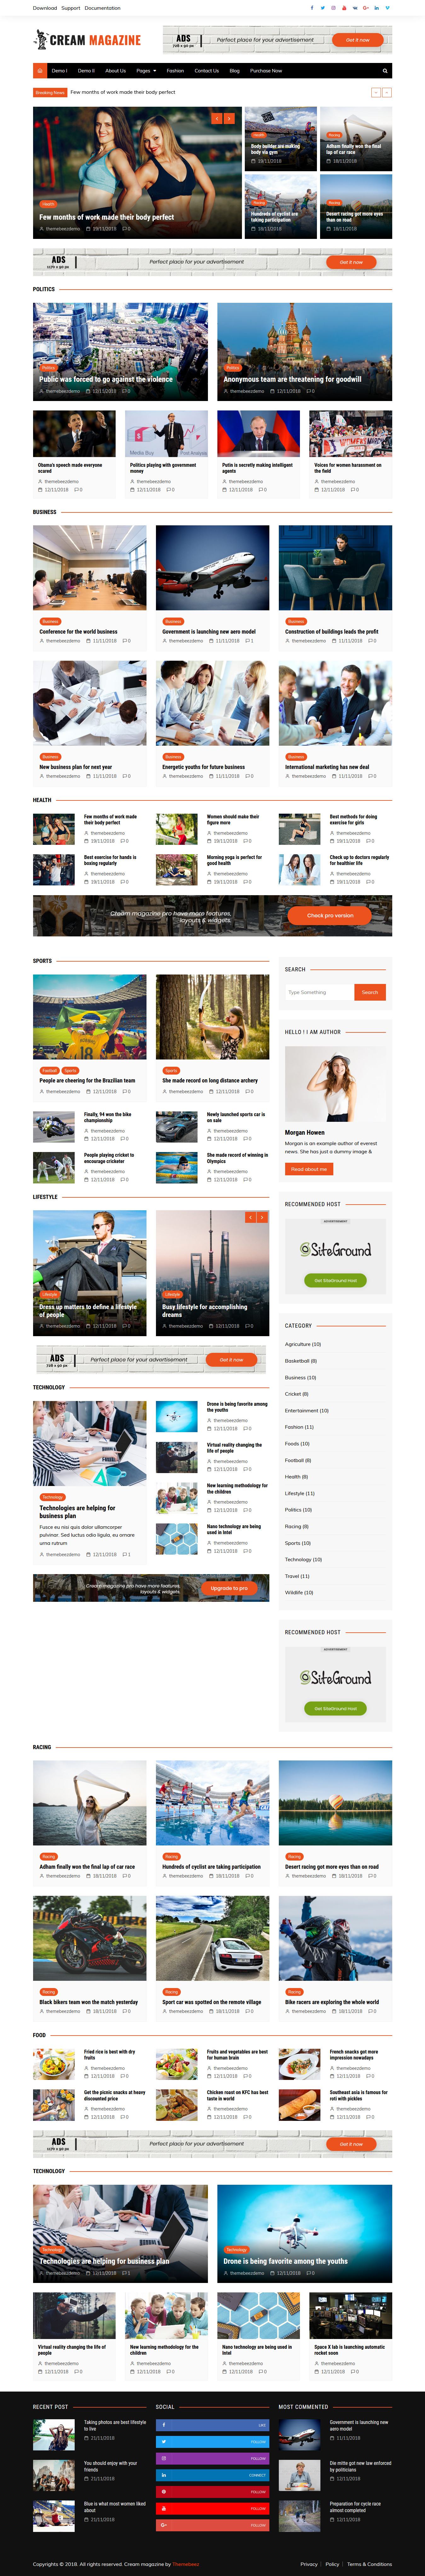 Cream Magazine - Best Free Review WordPress Theme